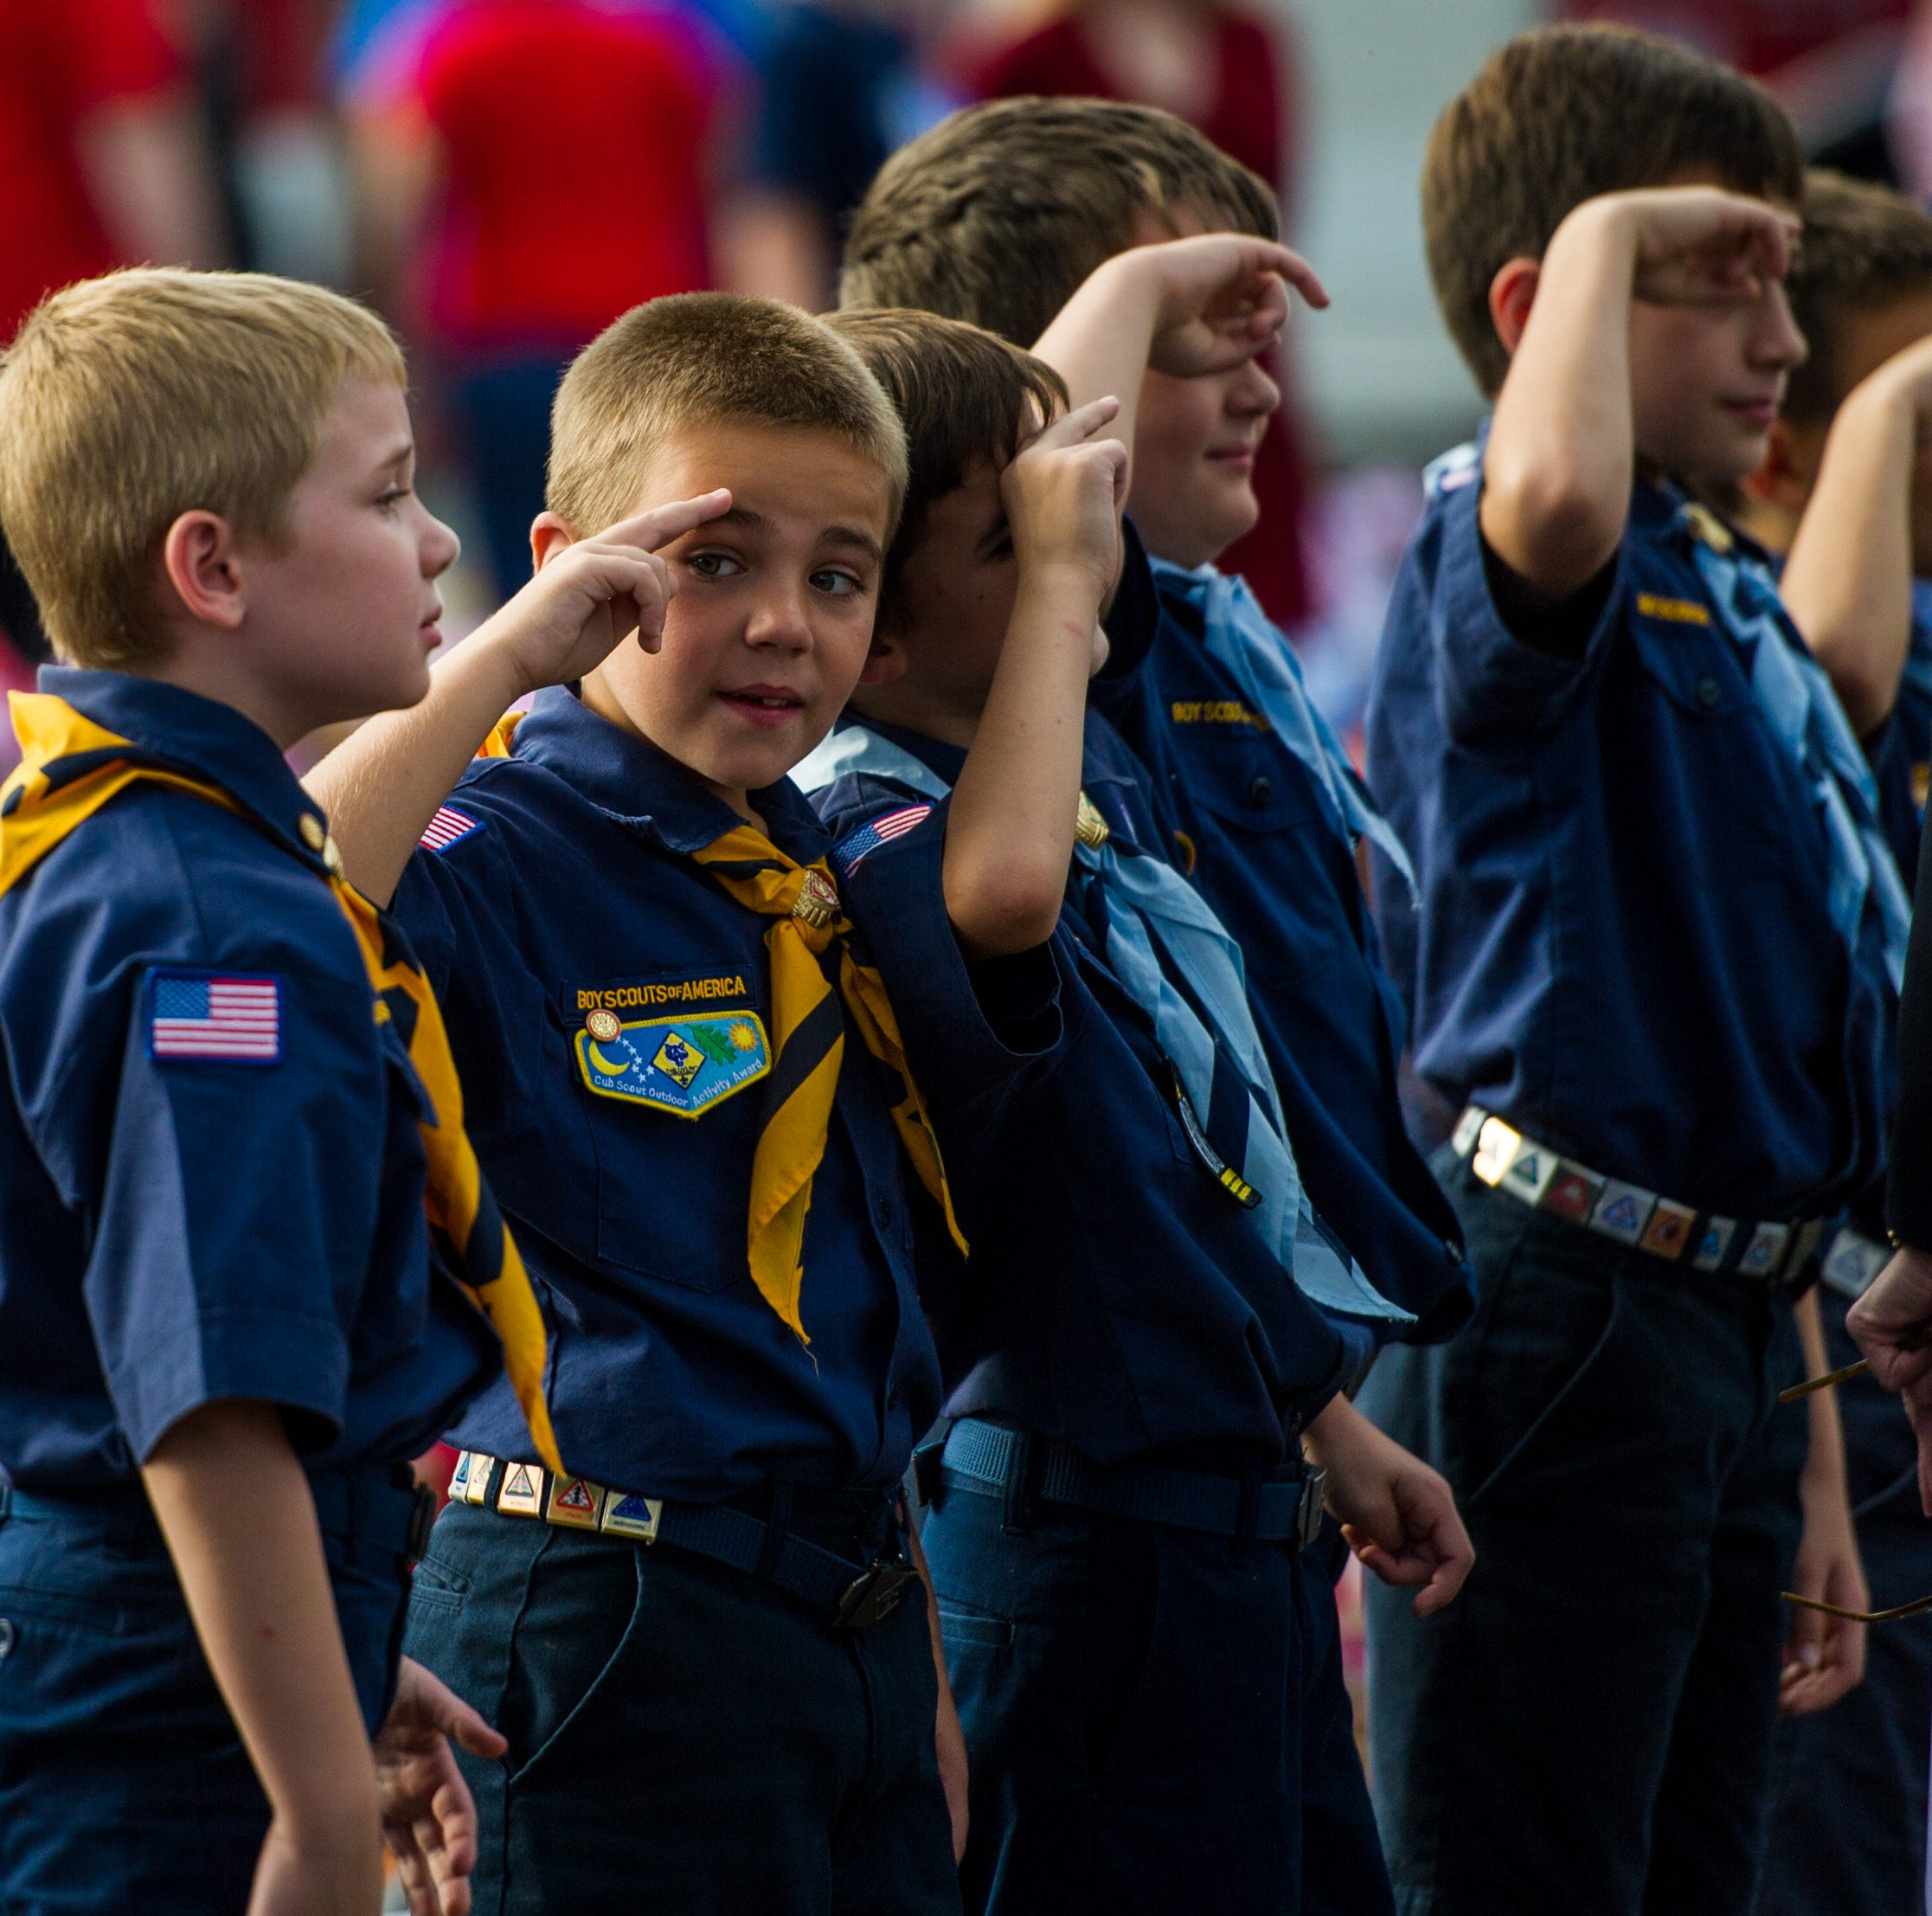 Girls will be girls.. and now Boy Scouts